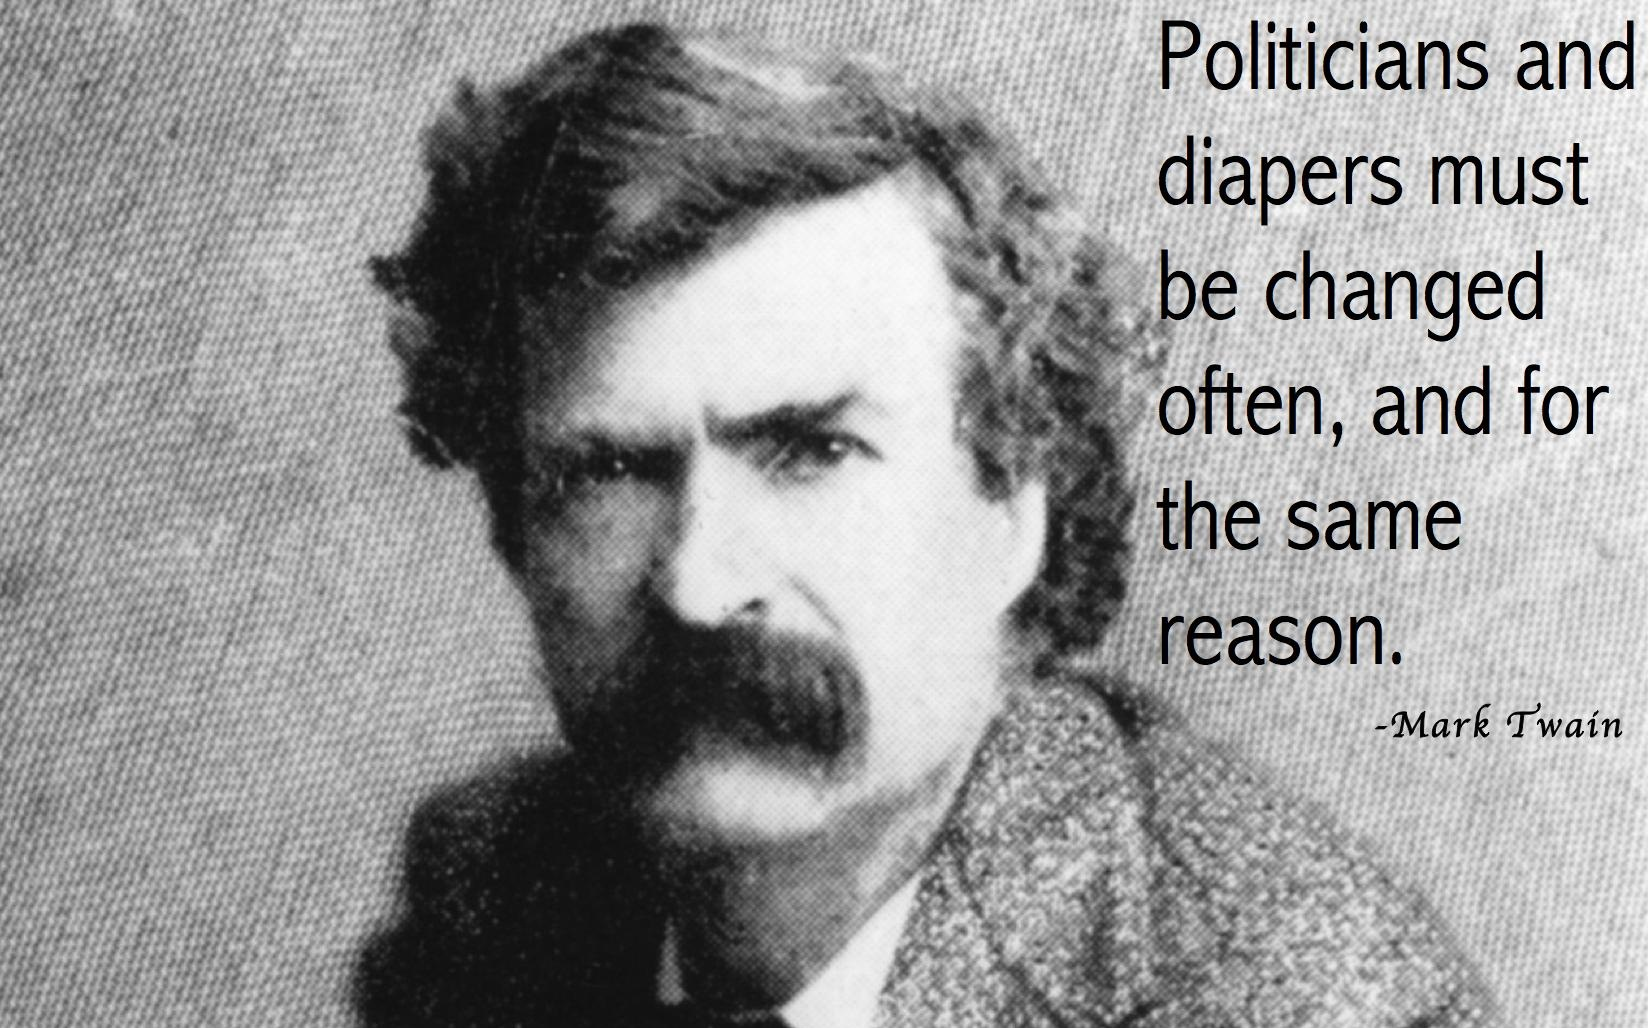 Politicians and diapers must be changed often and for the same reason.